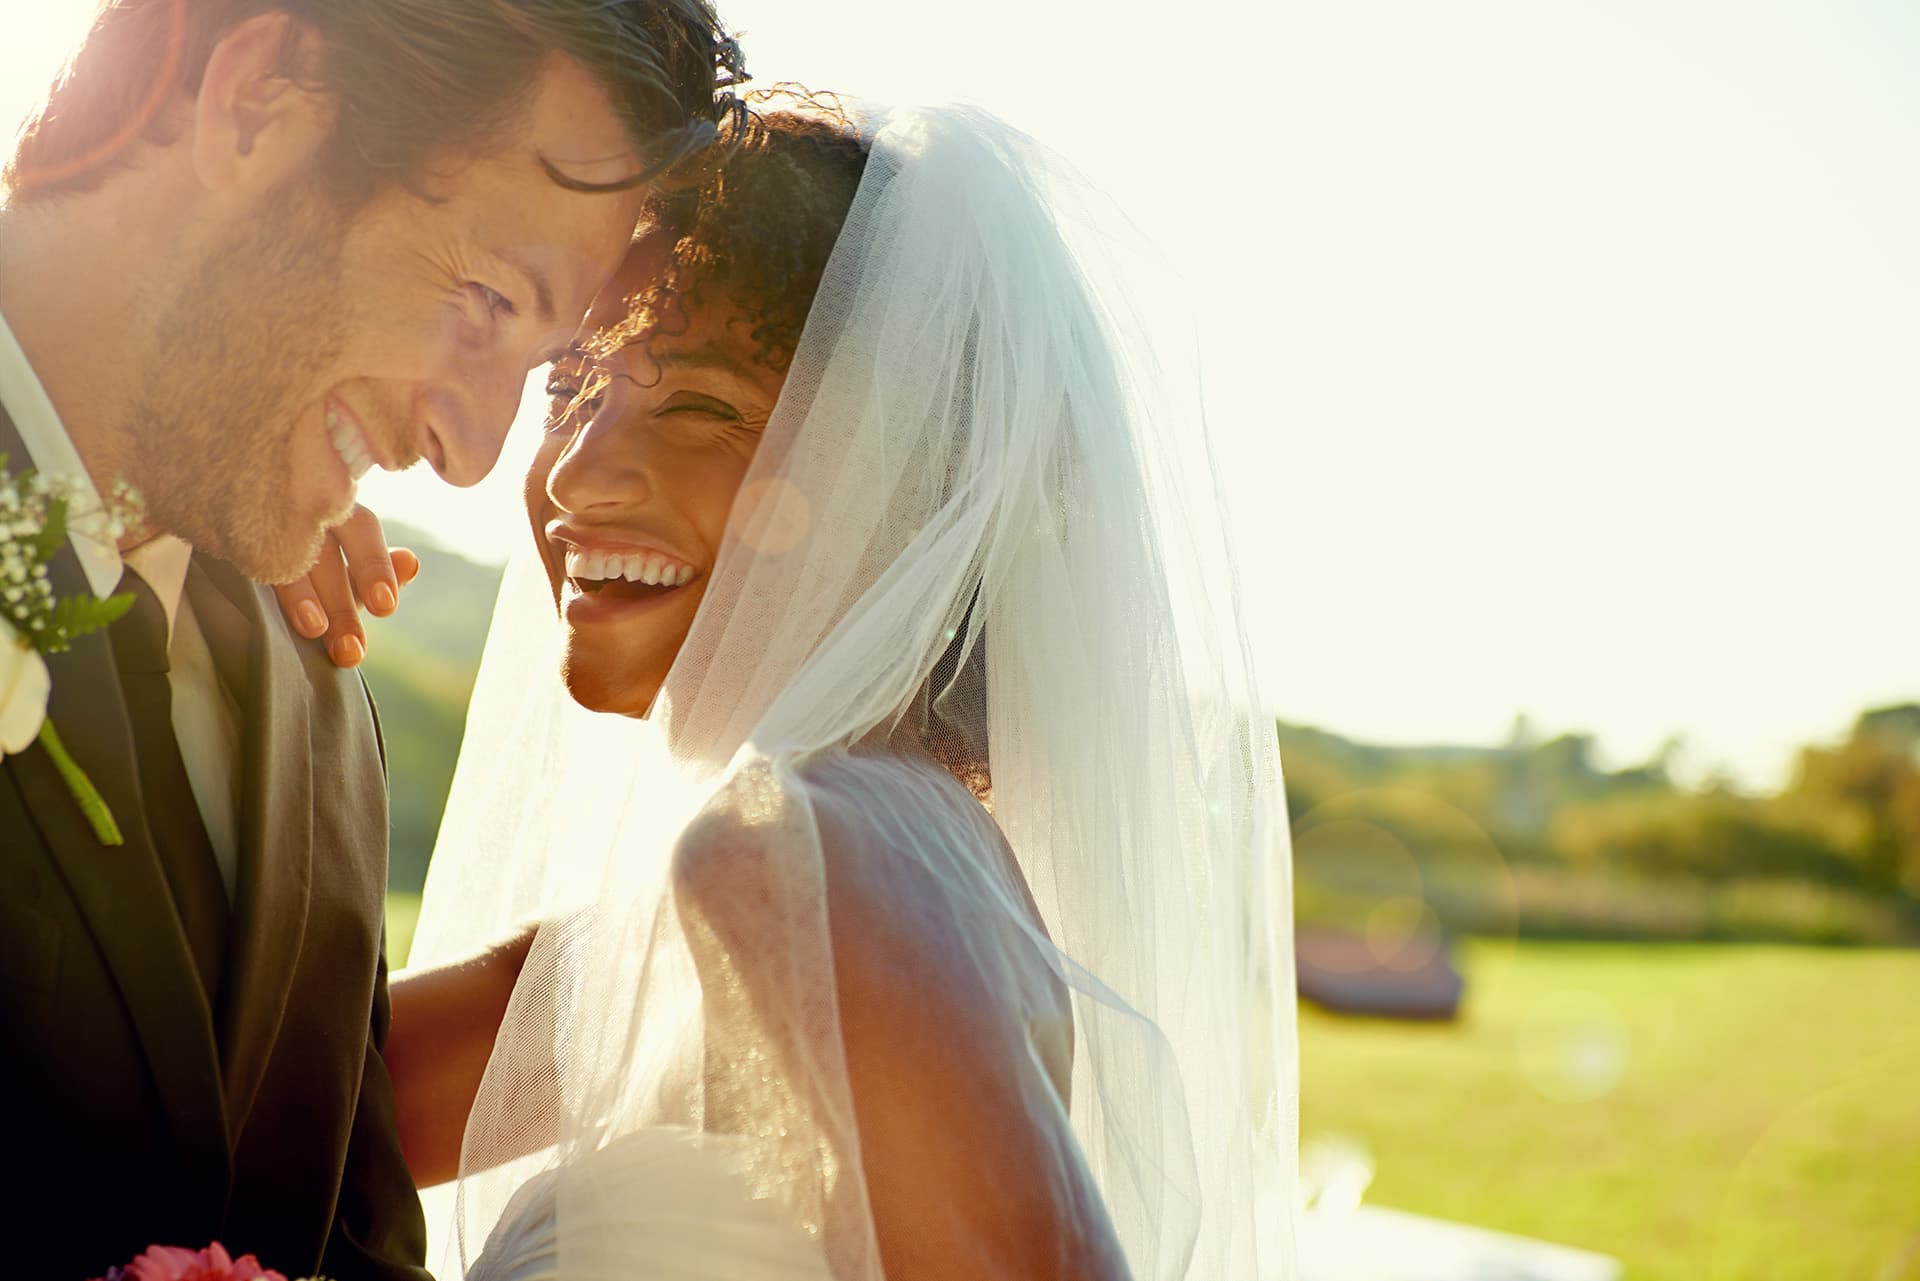 Life insurance for a bride and groom smiling and looking at each other